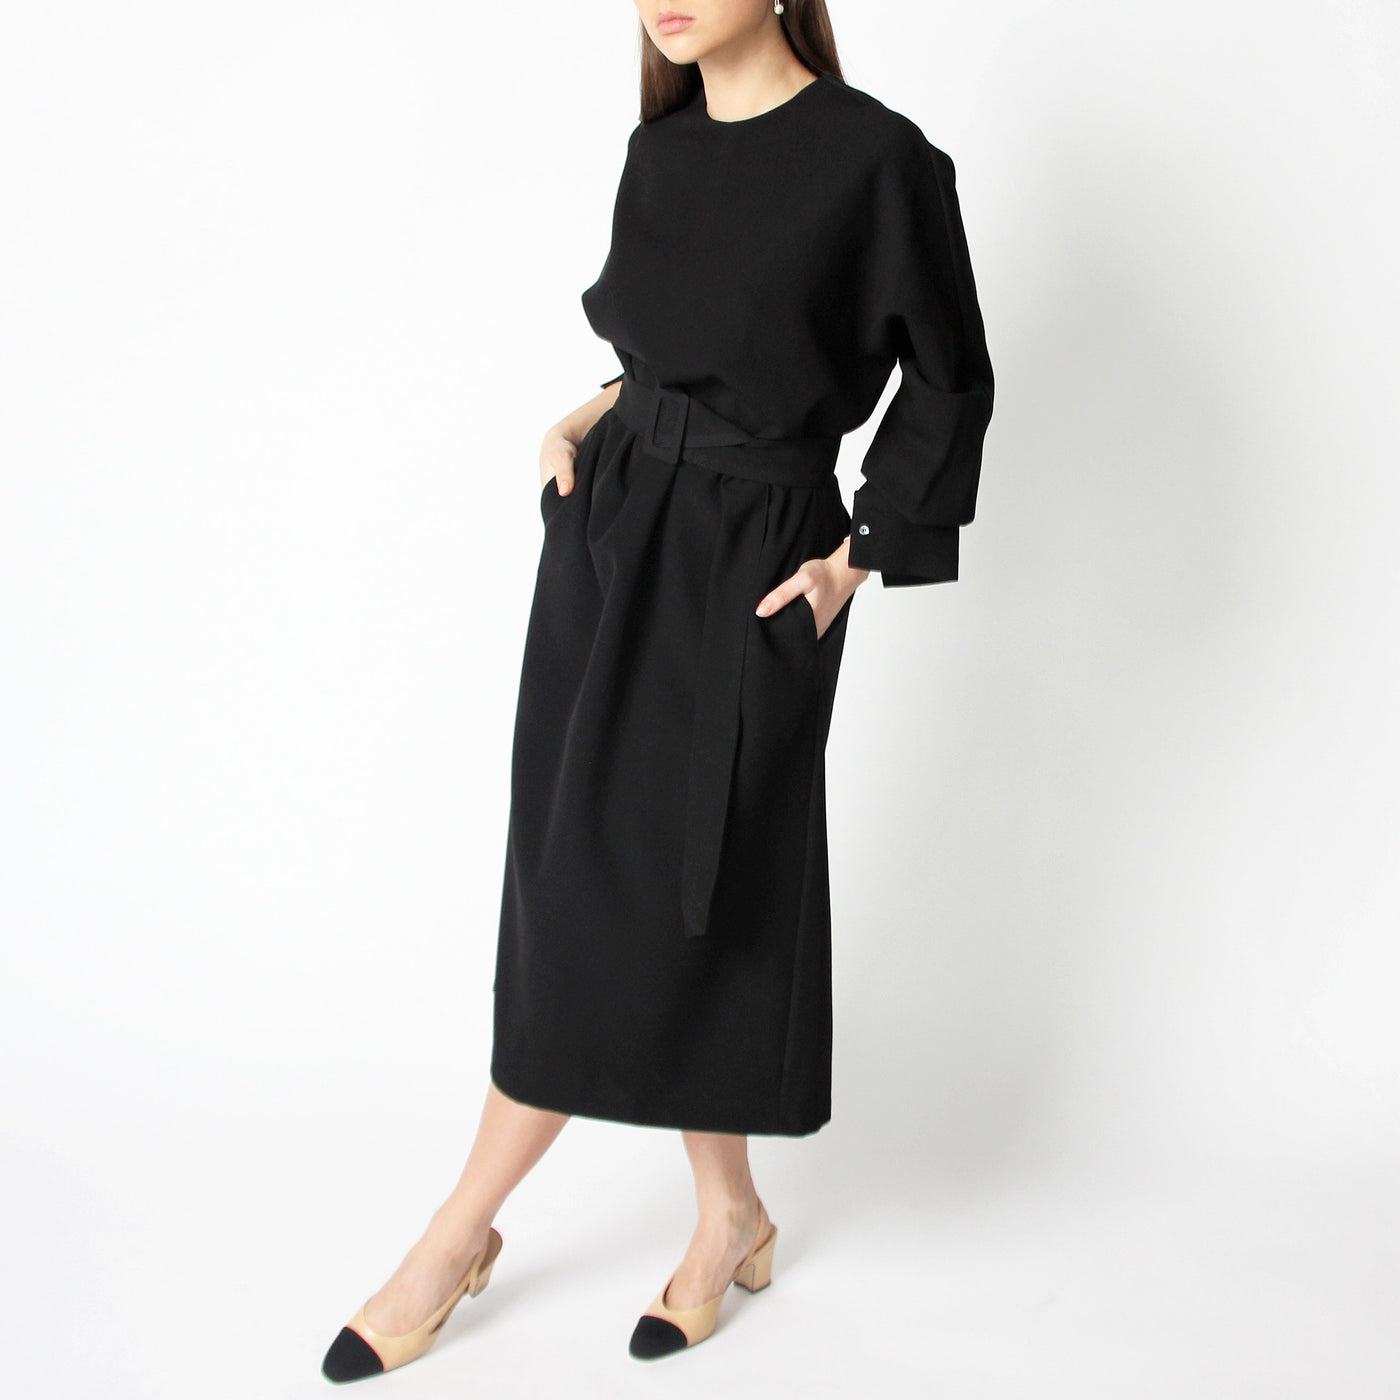 Classic Black Dress with a Belt - Marble Hive